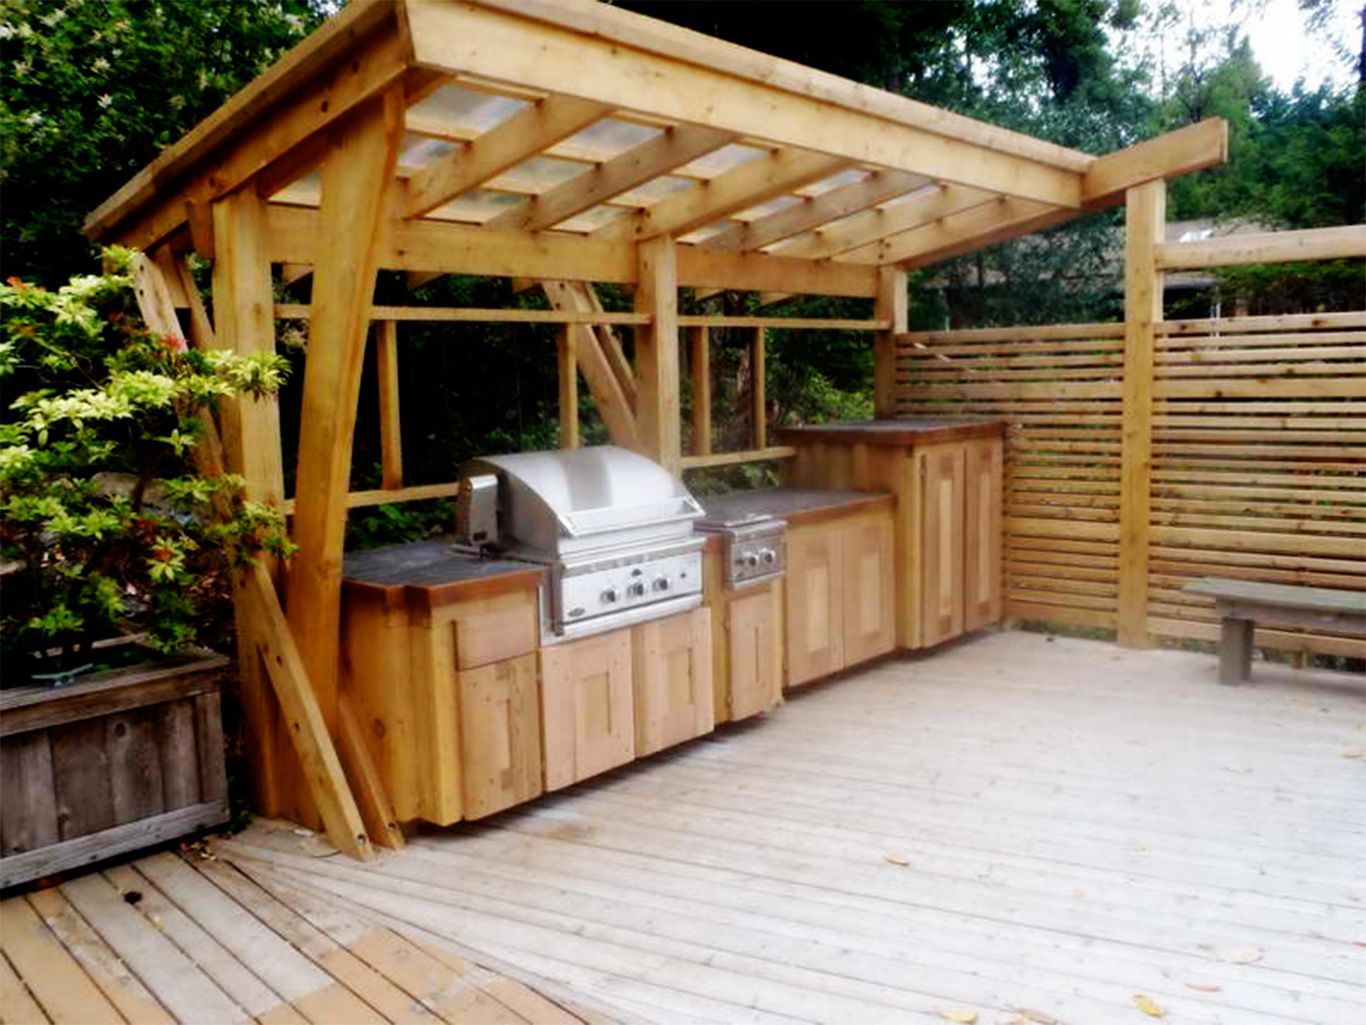 Outdoor Roof Ideas Outdoor Kitchen Roof Design Gazebo Designs Innovative Outdoor